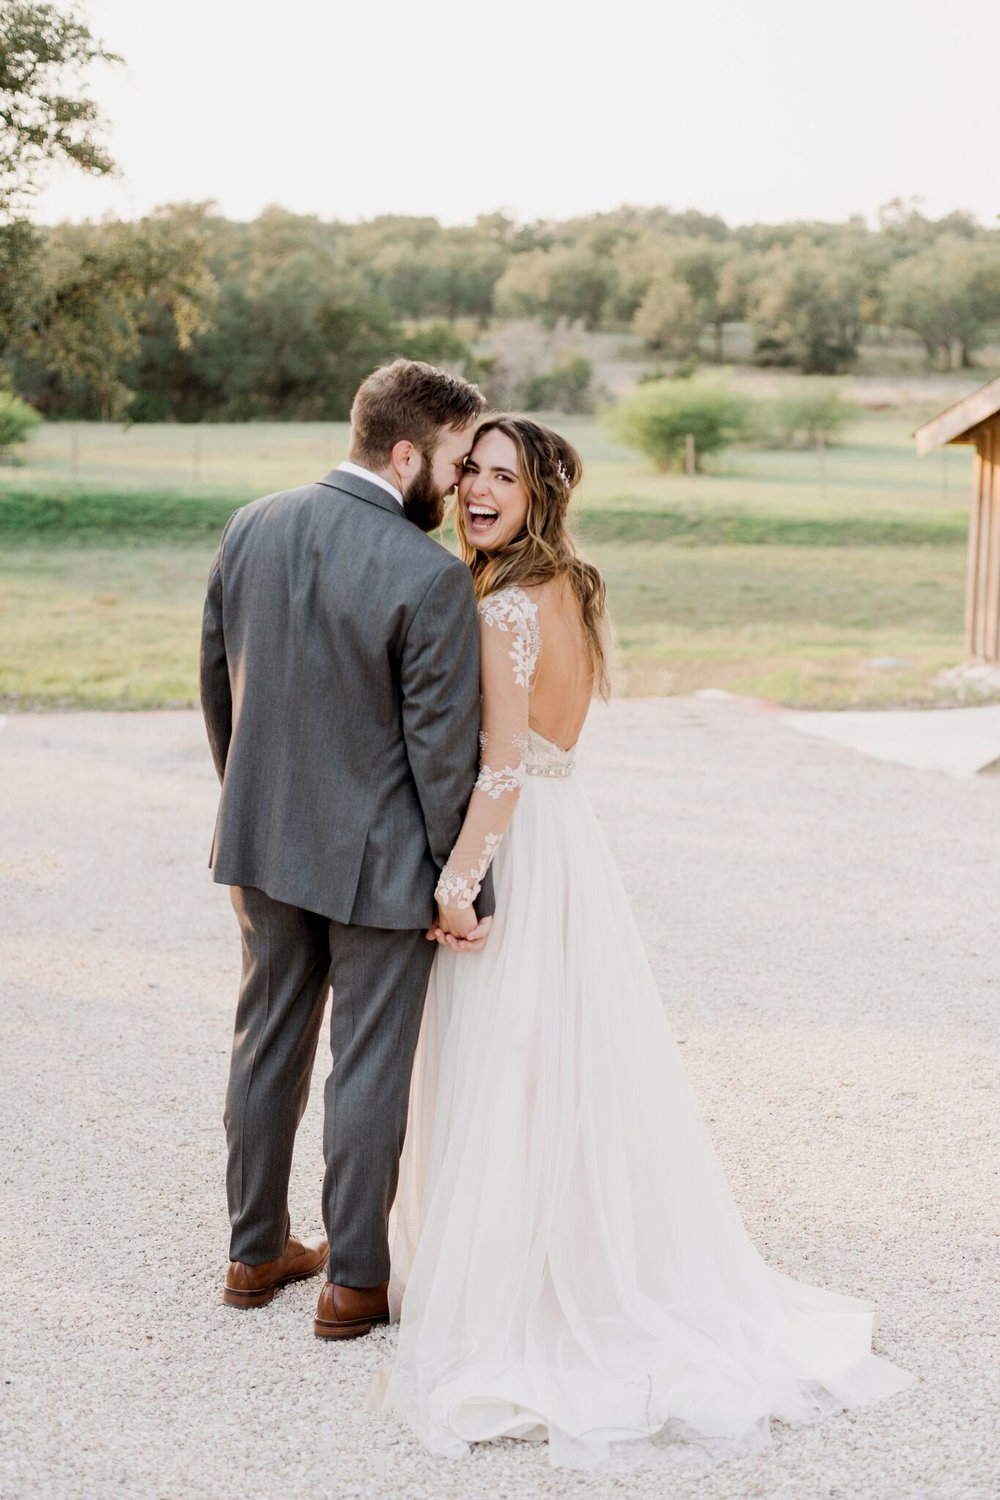 Brides of Austin   Macey Weds Chad | Colorful Whimsical Austin Wedding Shot by Captivating Weddings Photography